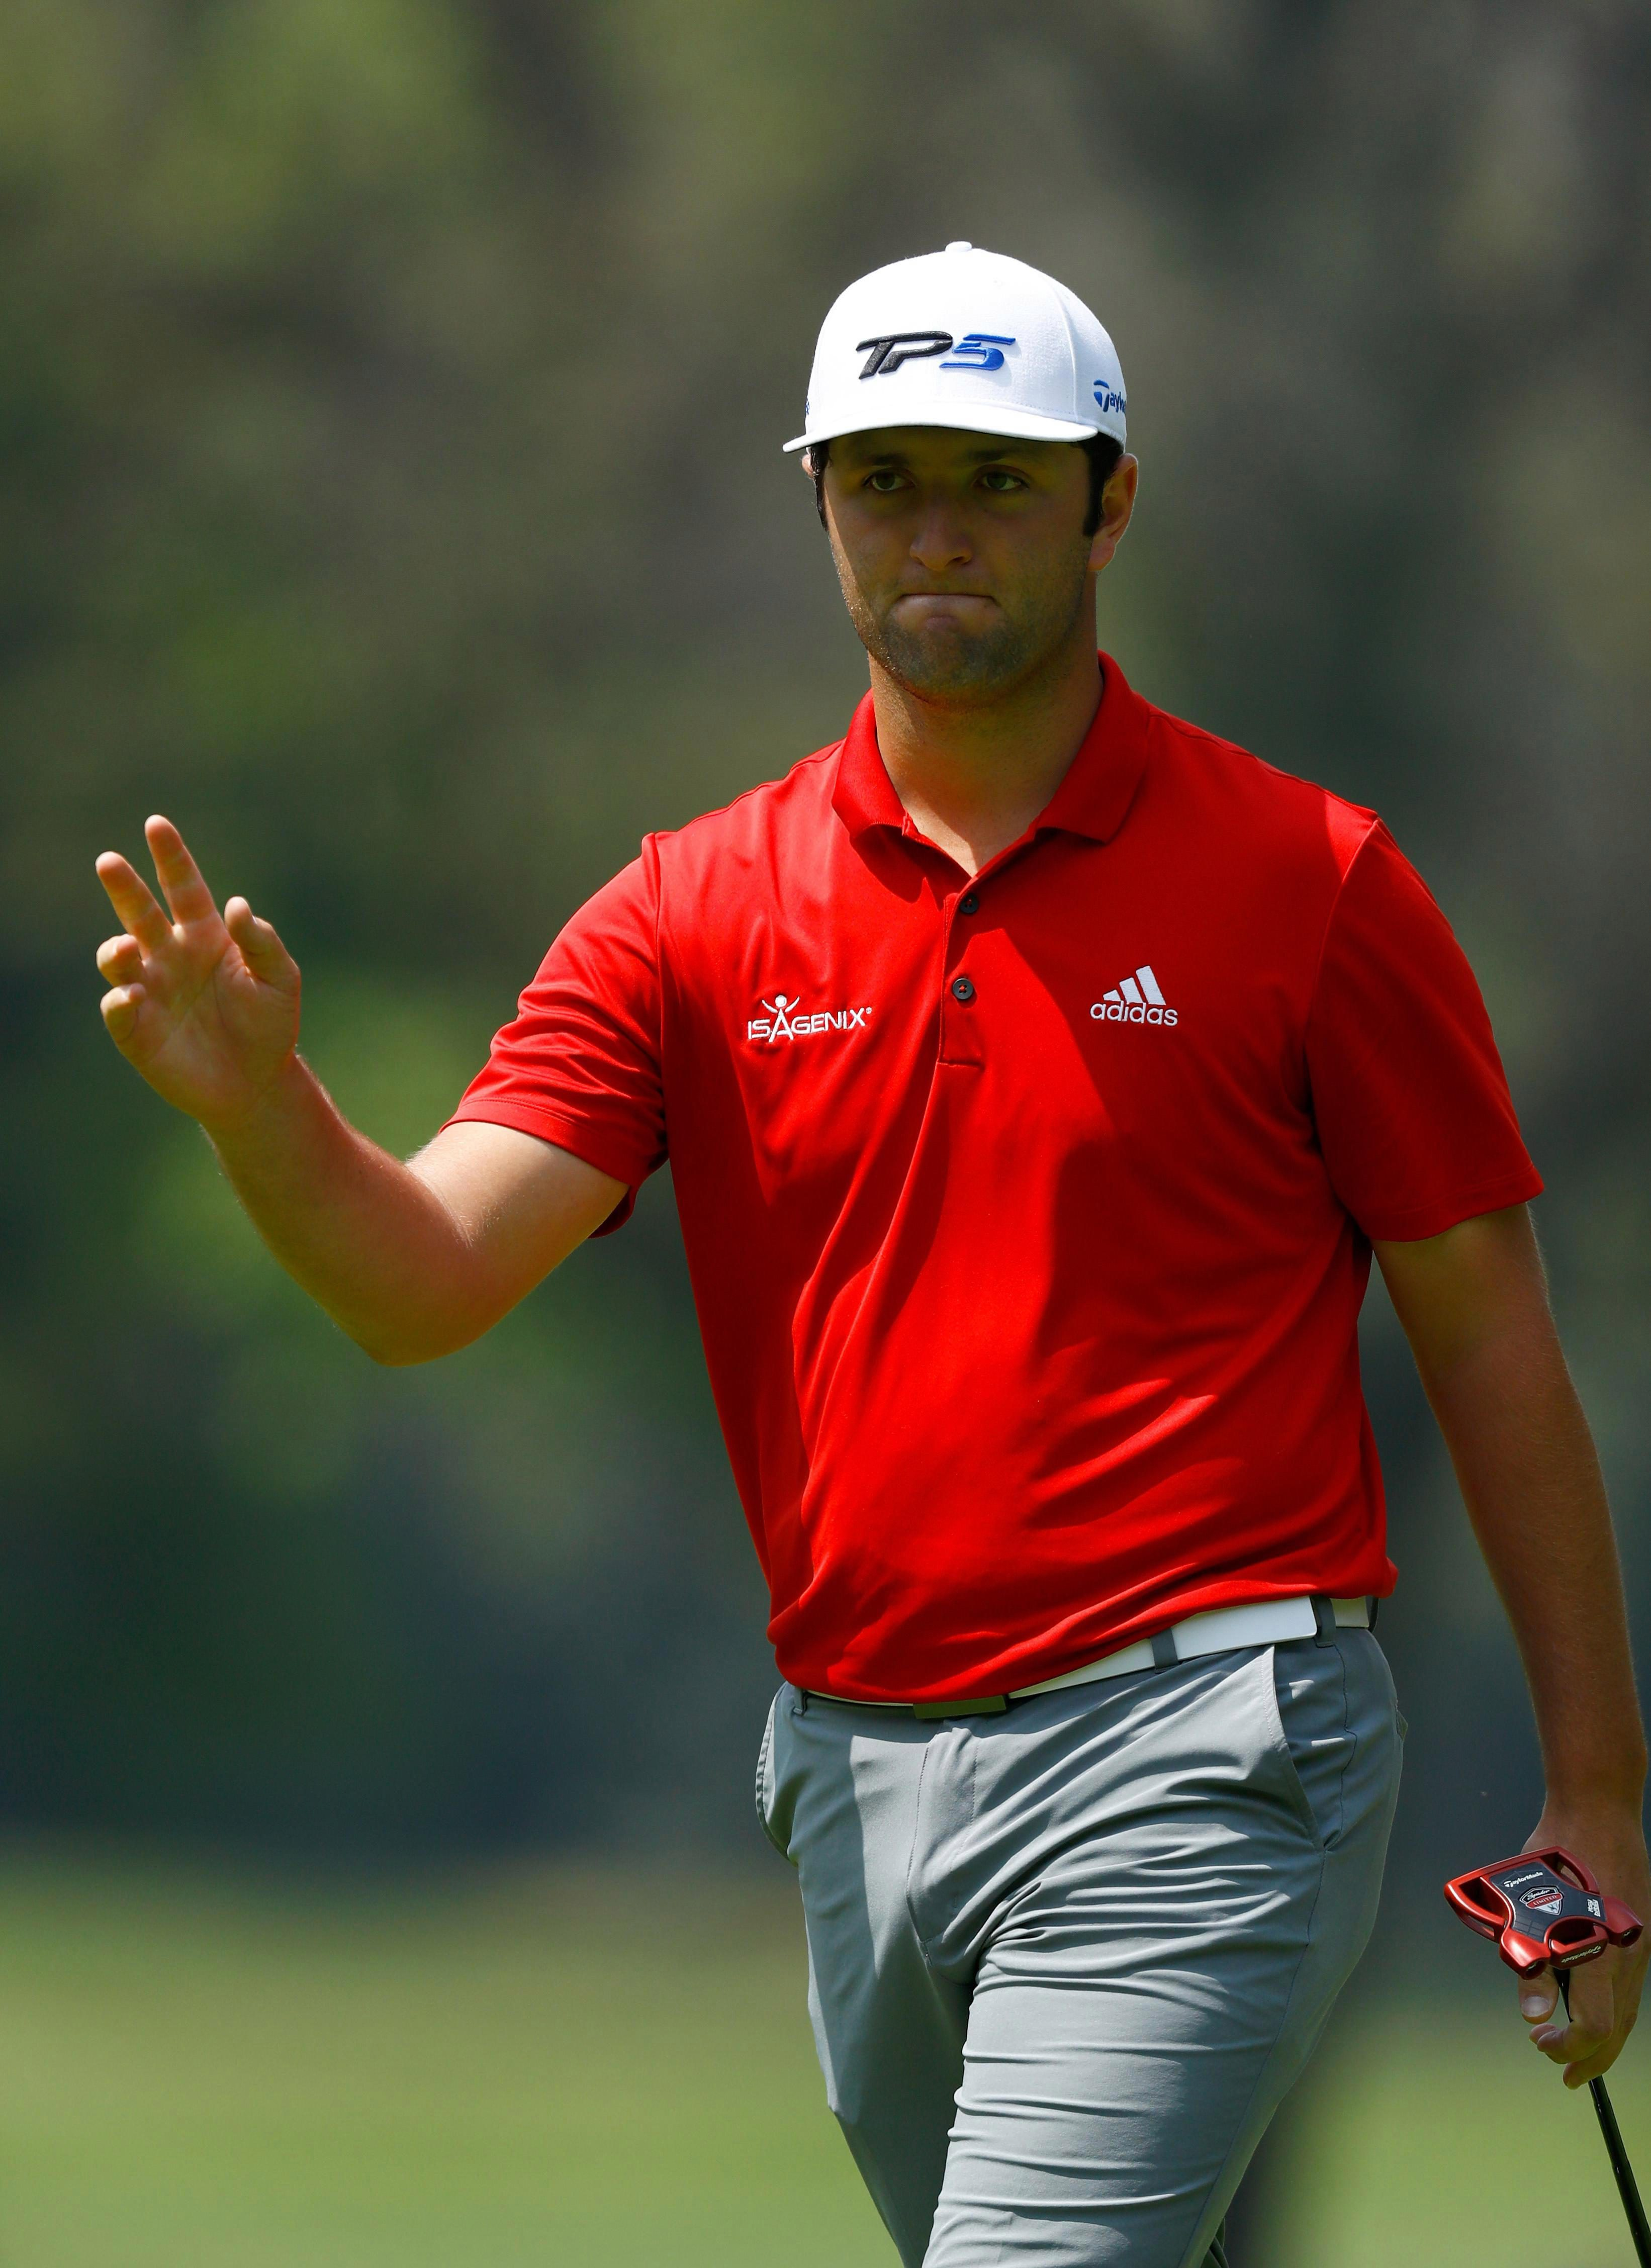 Jon Rahm is being branded as golf's next big thing